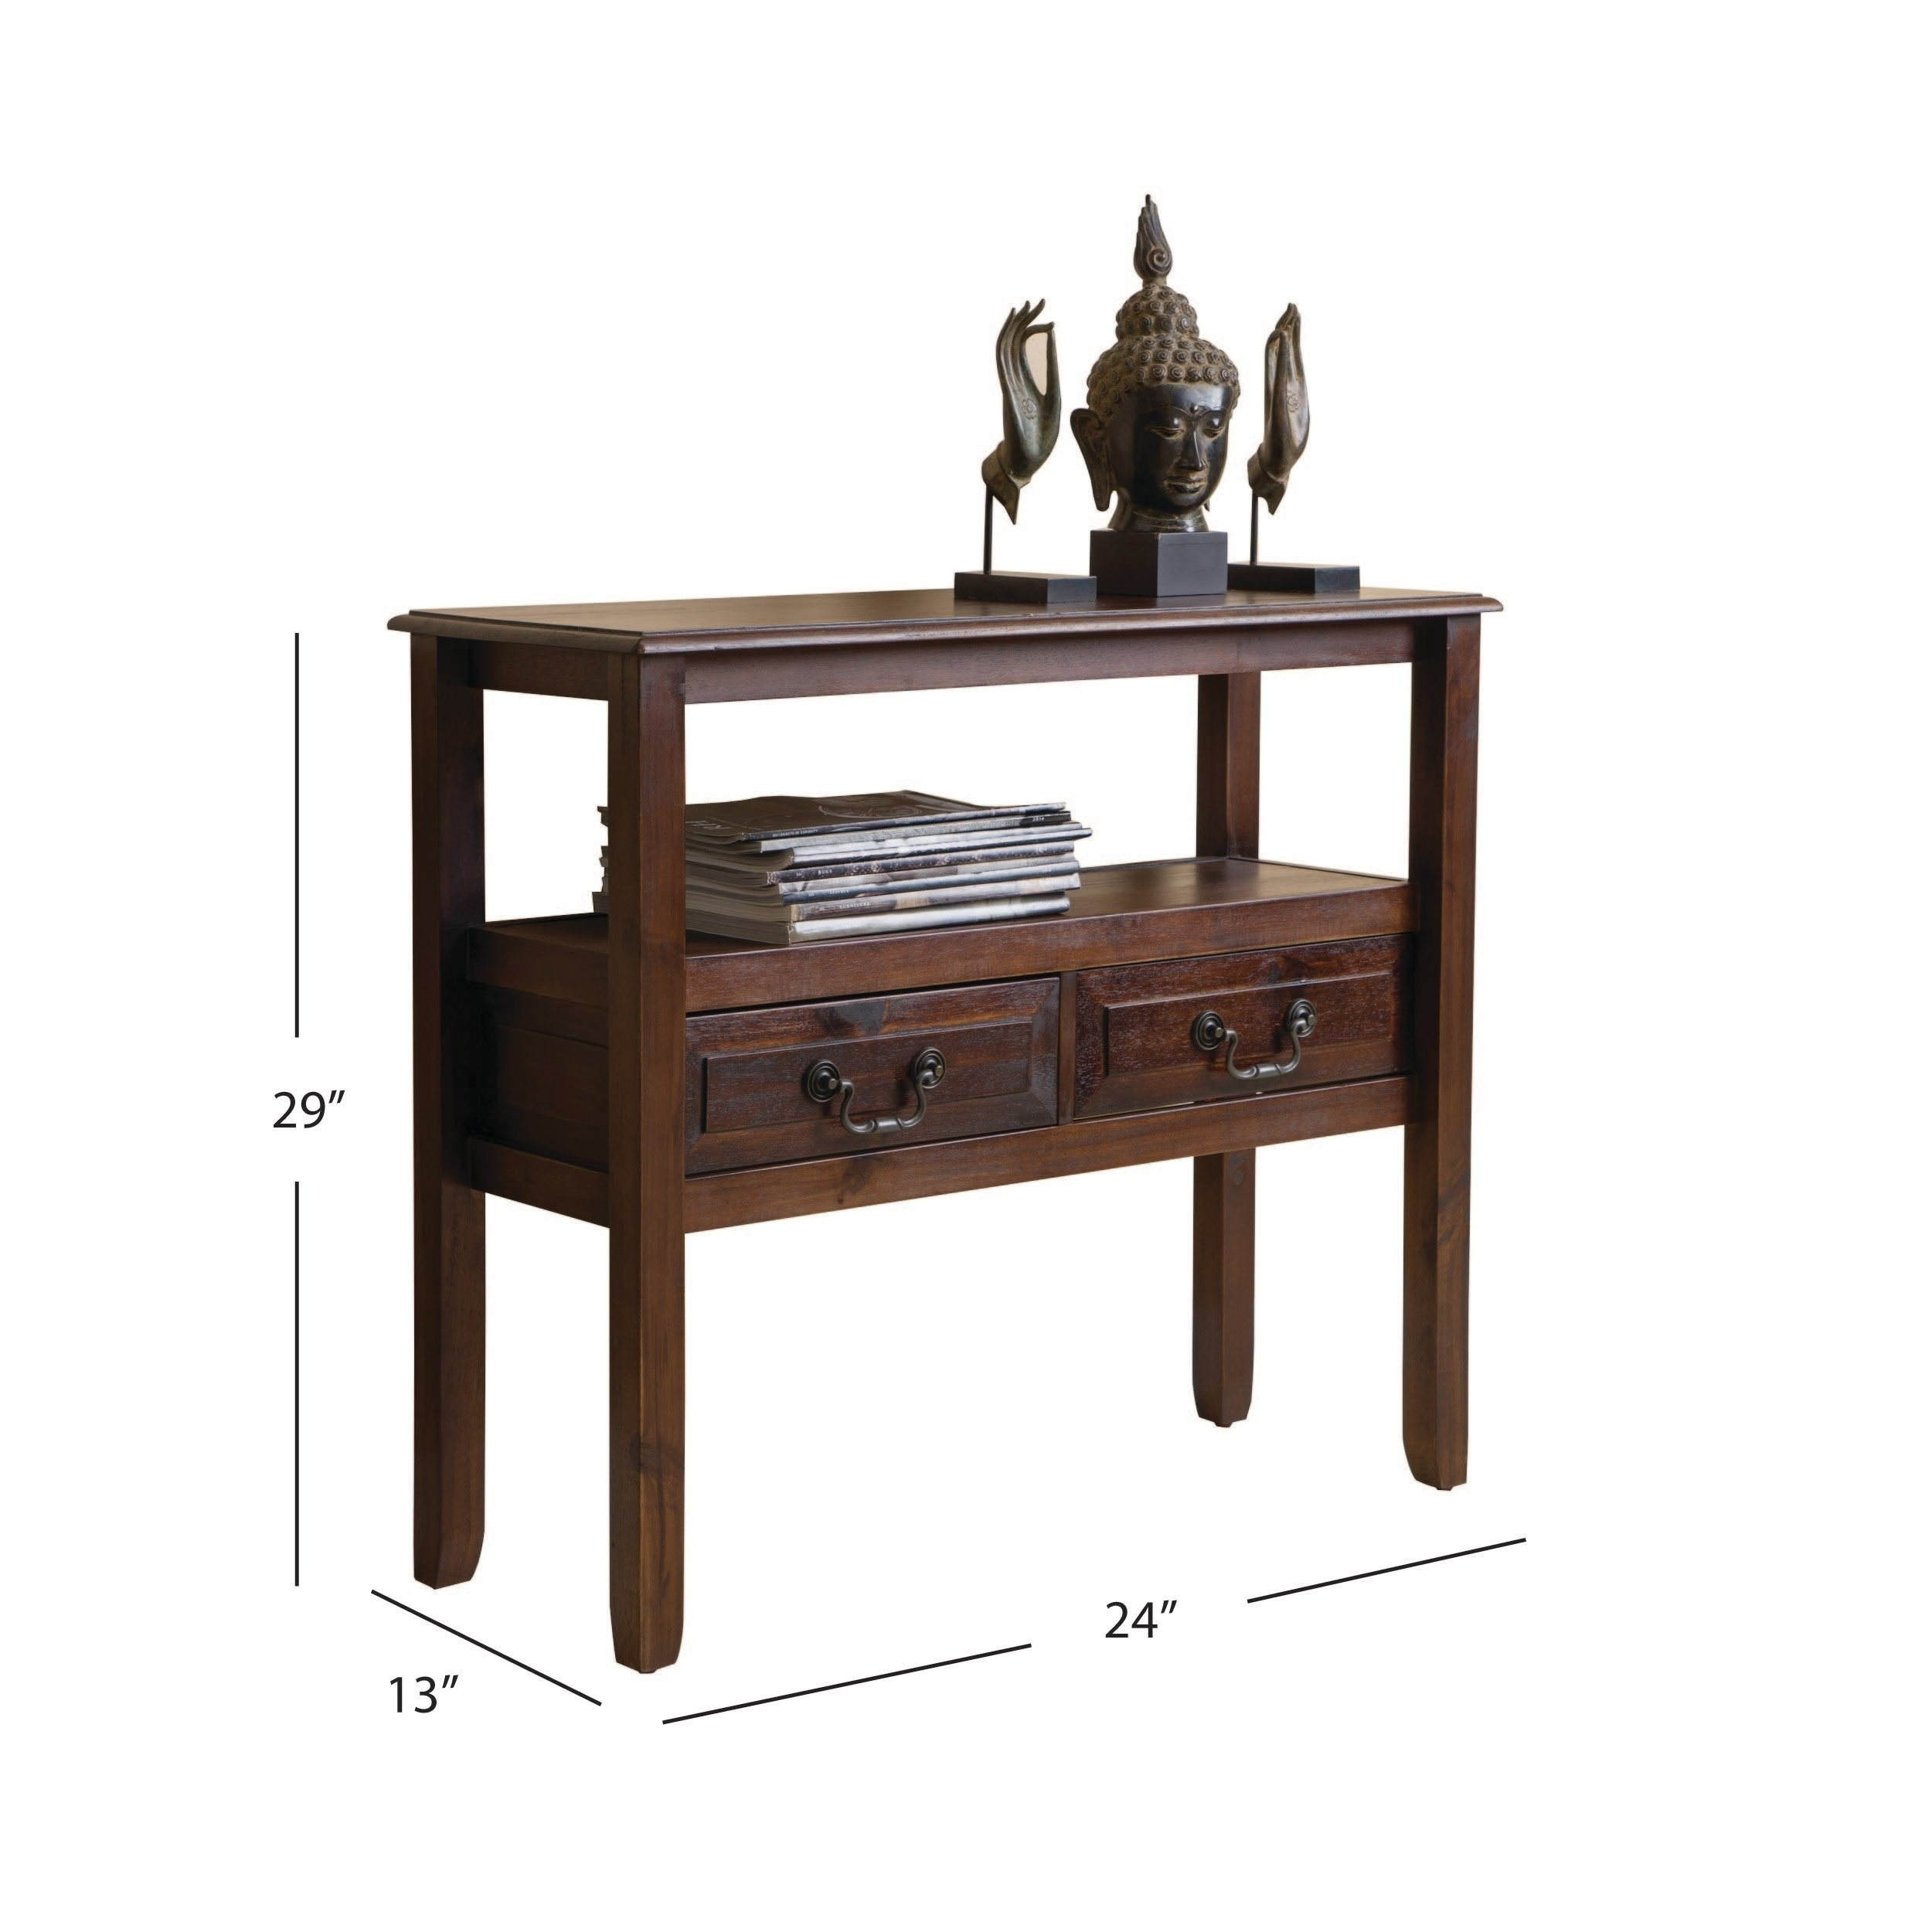 grant acacia wood accent table christopher knight home free shipping today round tablecloth sizes wooden threshold plates target coffee pottery barn architect lamp for black and